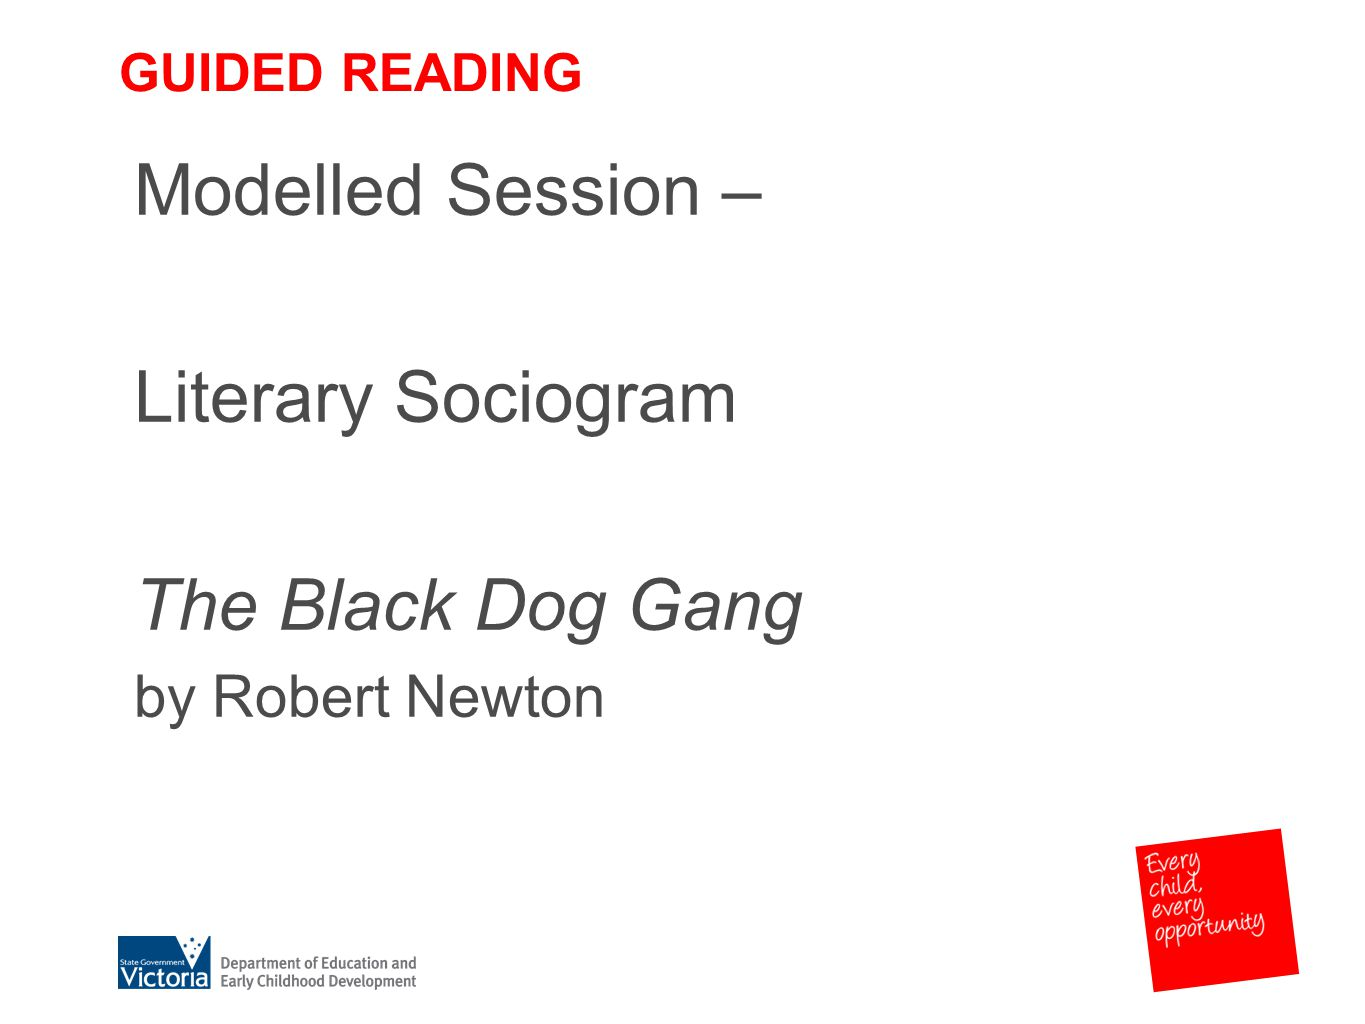 GUIDED READING Modelled Session – Literary Sociogram The Black Dog Gang by Robert Newton